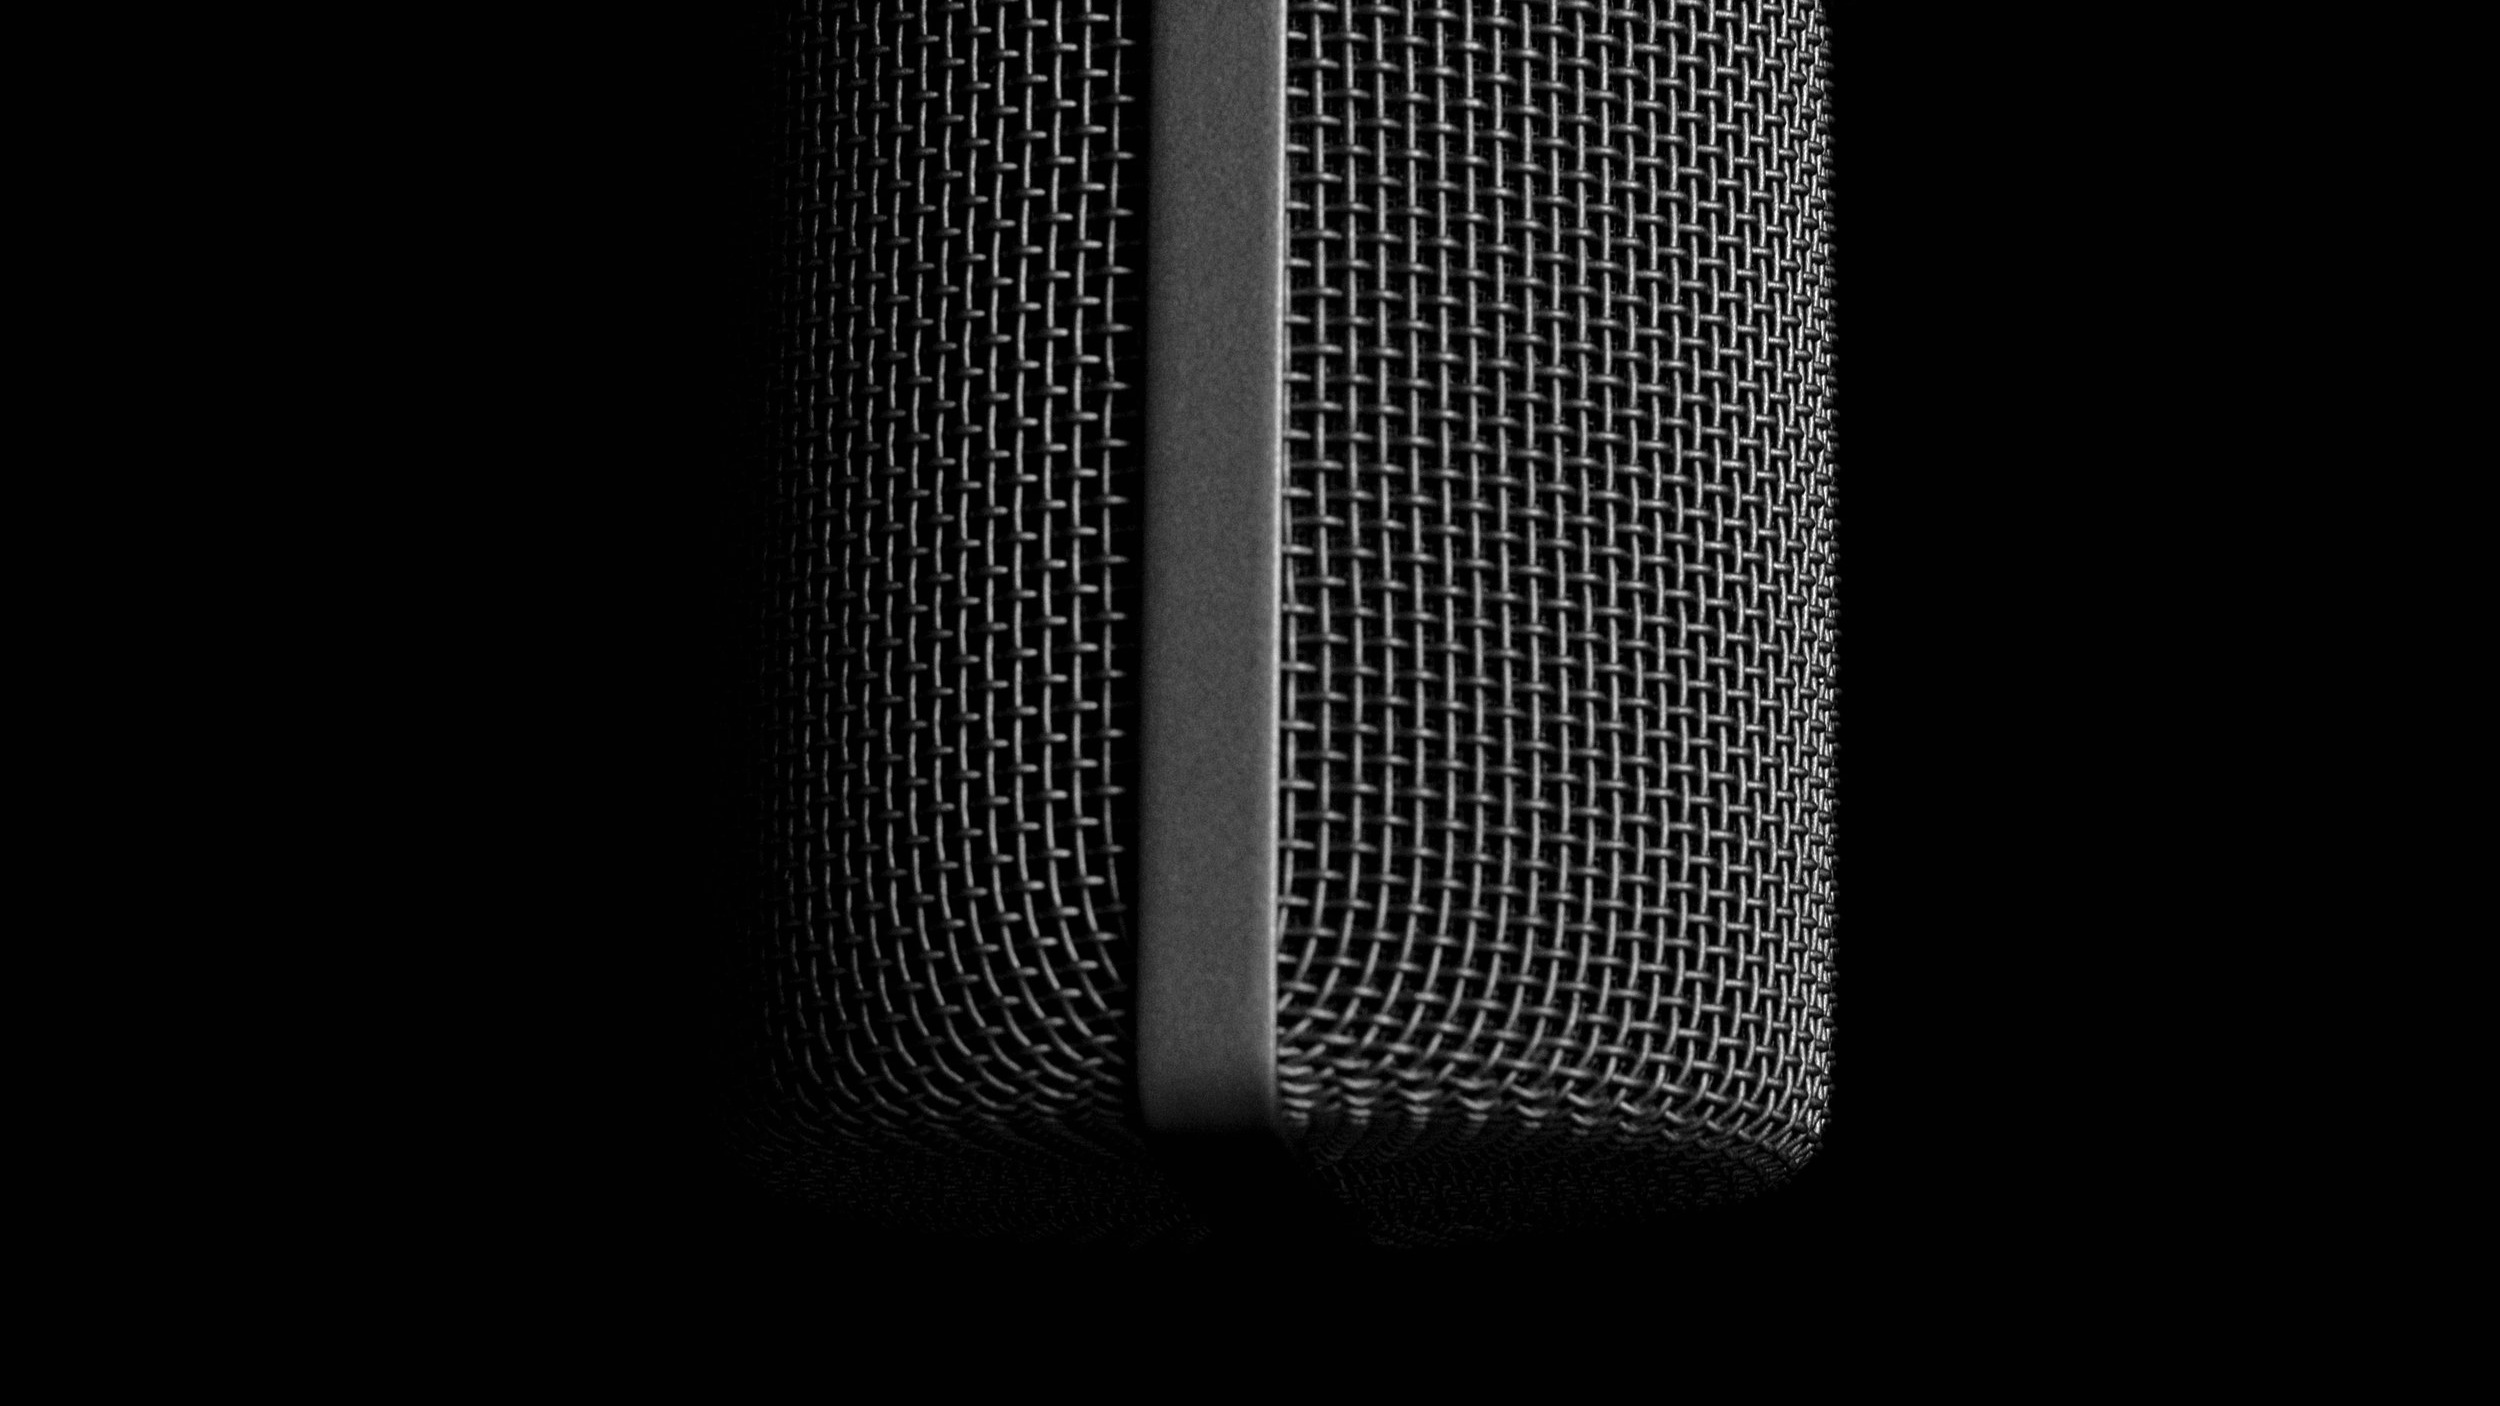 aluminum-audio-black-and-white-352505.jpg